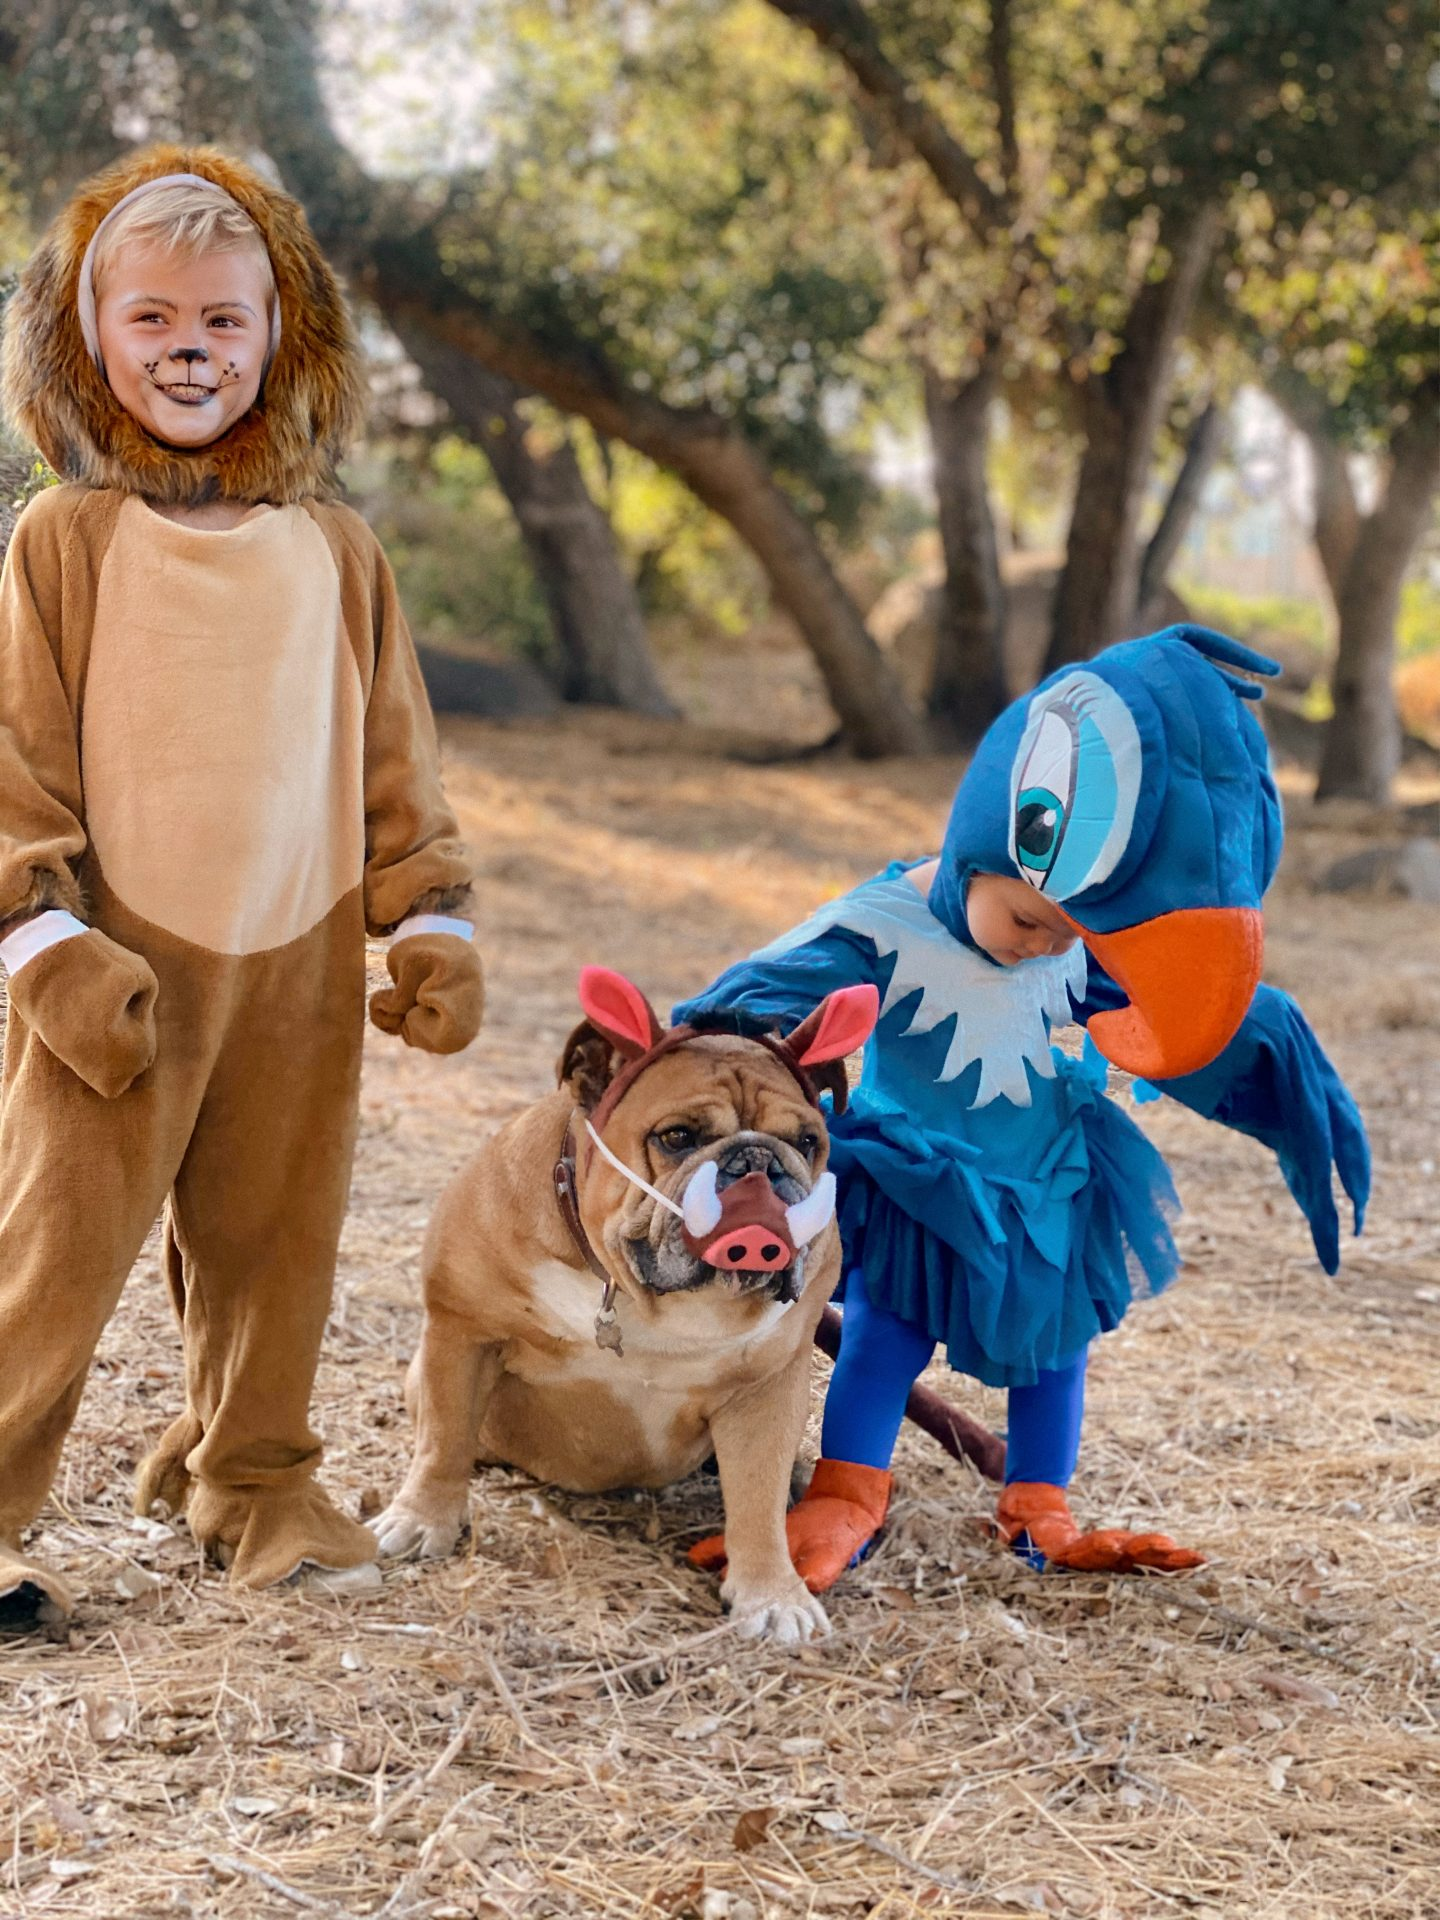 Family Halloween Costumes by popular San Diego lifestyle blog, Navy Grace: image of a family dressed up as characters from The Lion King